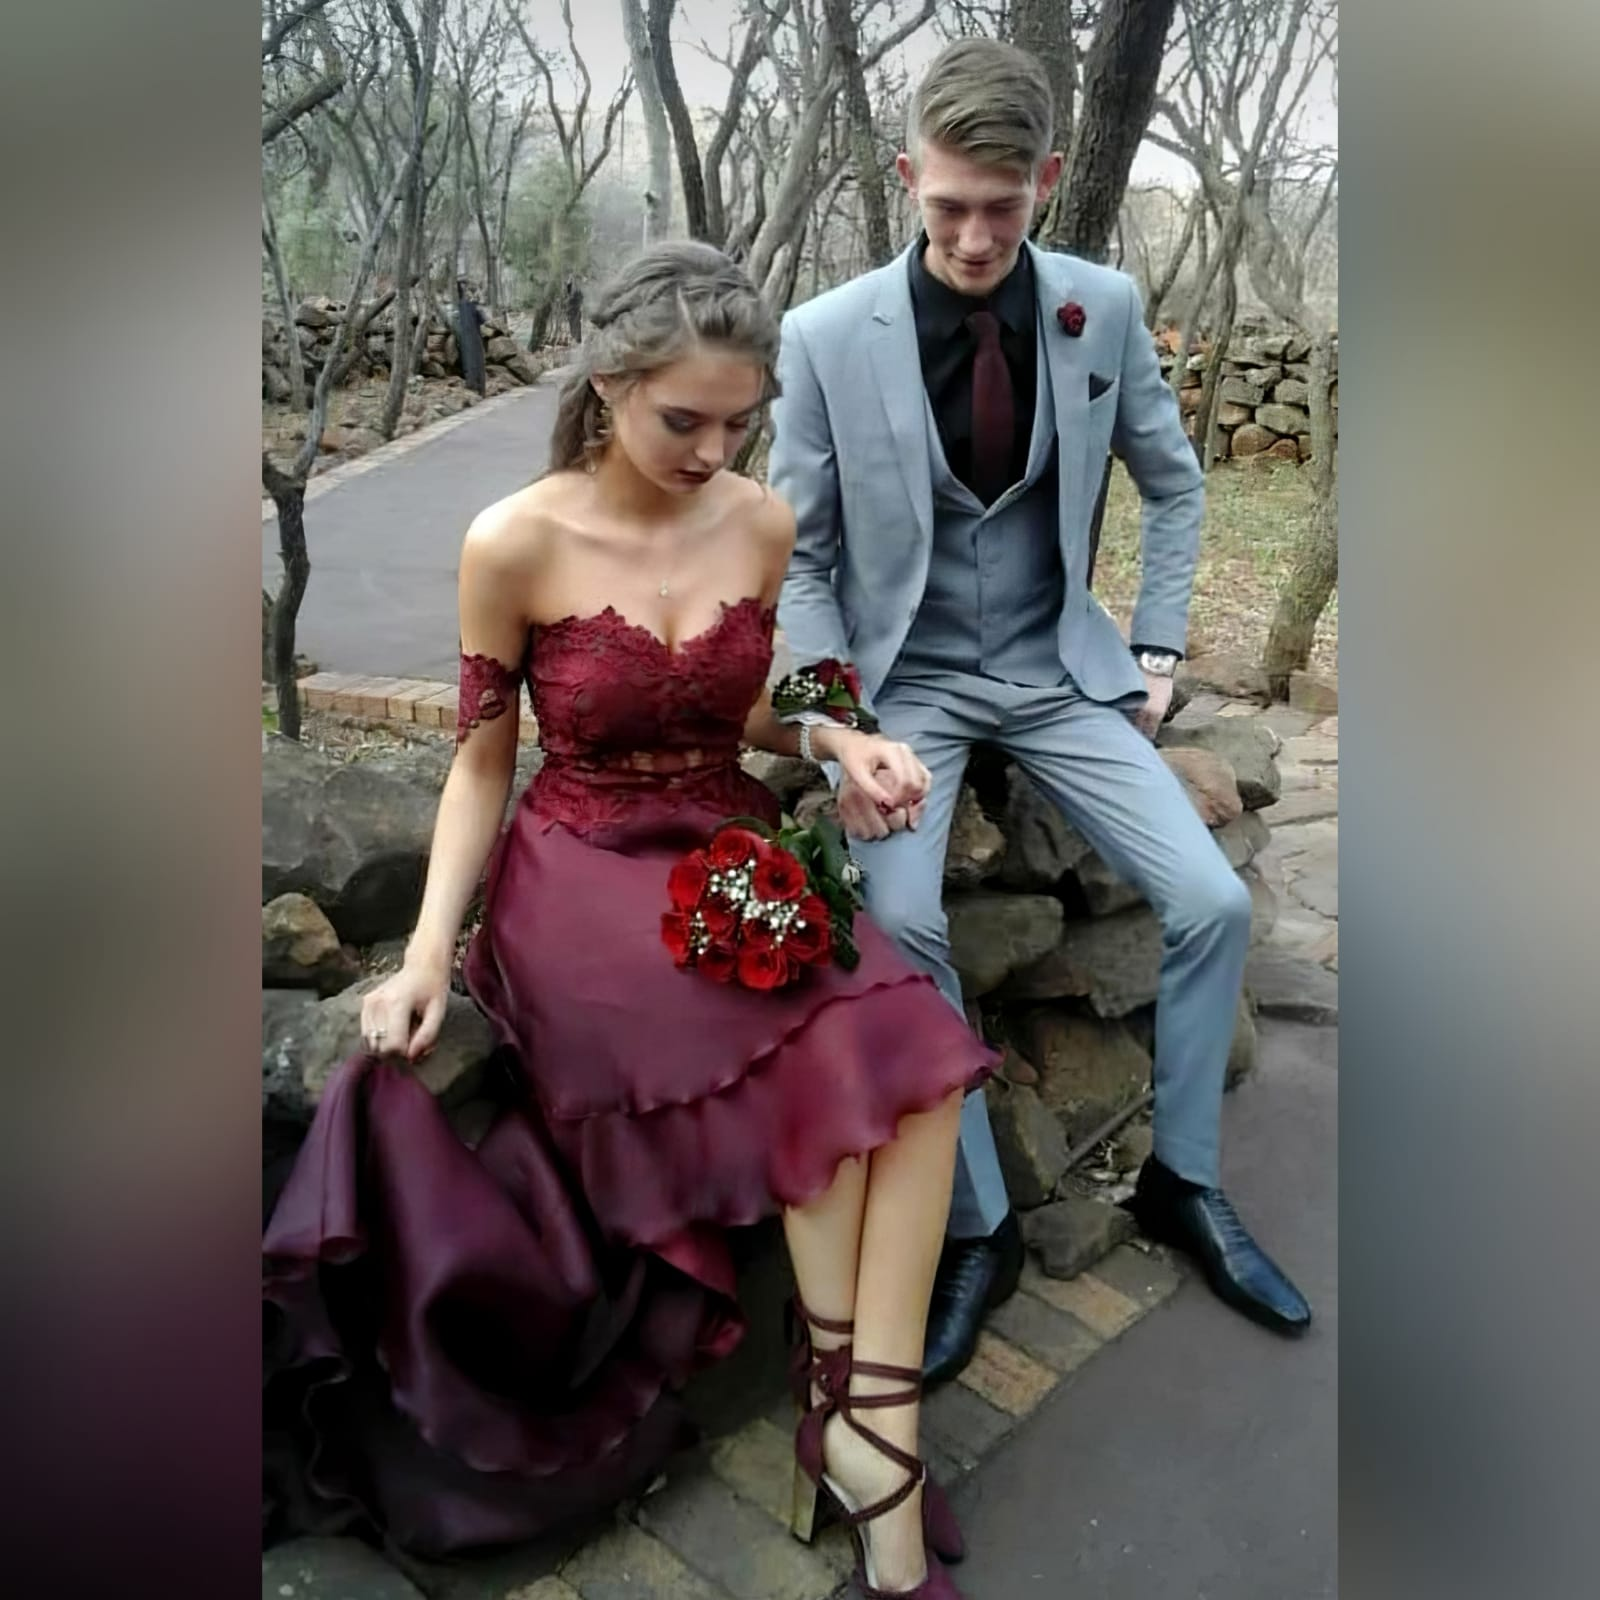 Dark red high low evening dress 9 the perfect dark red evening dress for your prom night if you want to look elegant yet adorable. With a lace bodice and a double layer hi - lo flowy bottom for a slight dramatic effect.